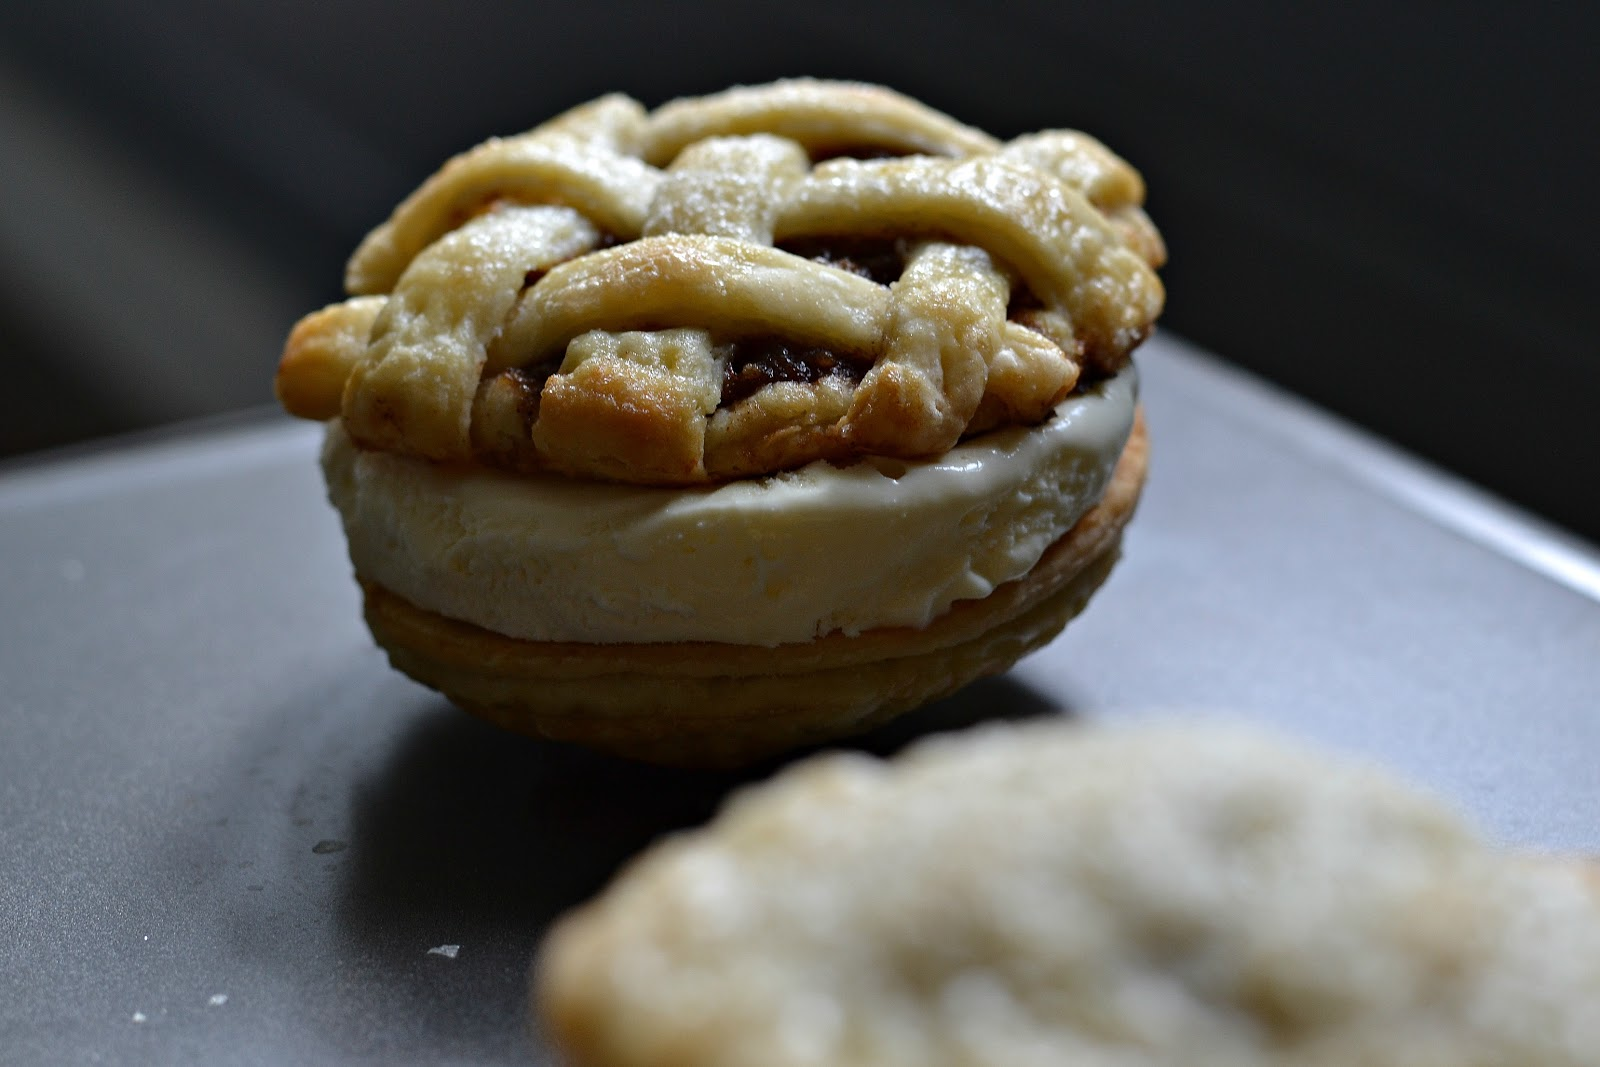 Apple Pie Ice Cream Sandwiches - Baked New England